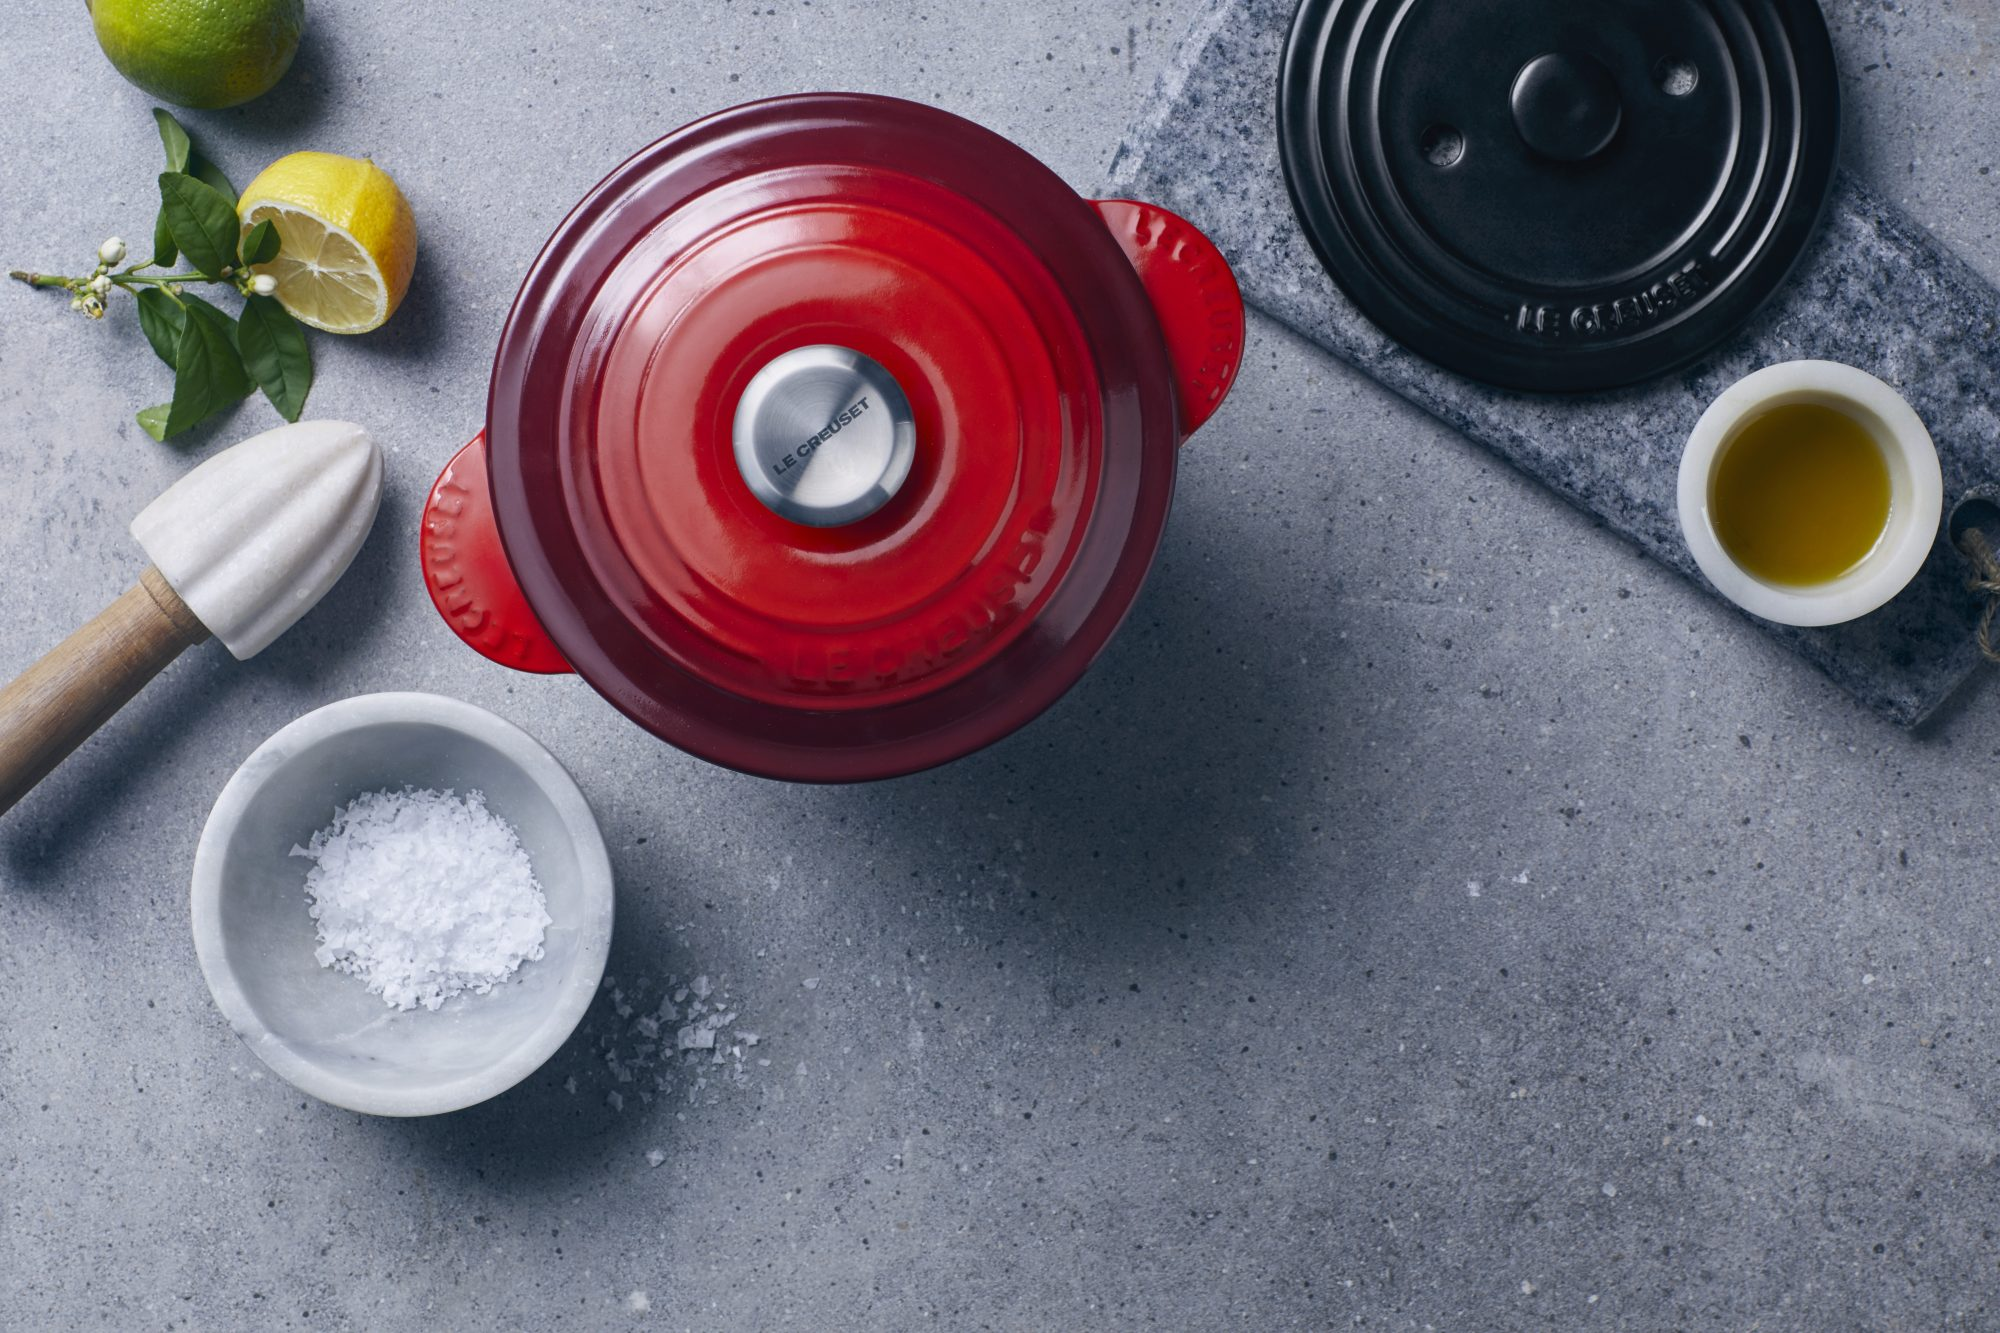 Le Creuset Has a New Rice Pot, So We Tried It Against an Electric Rice Cooker